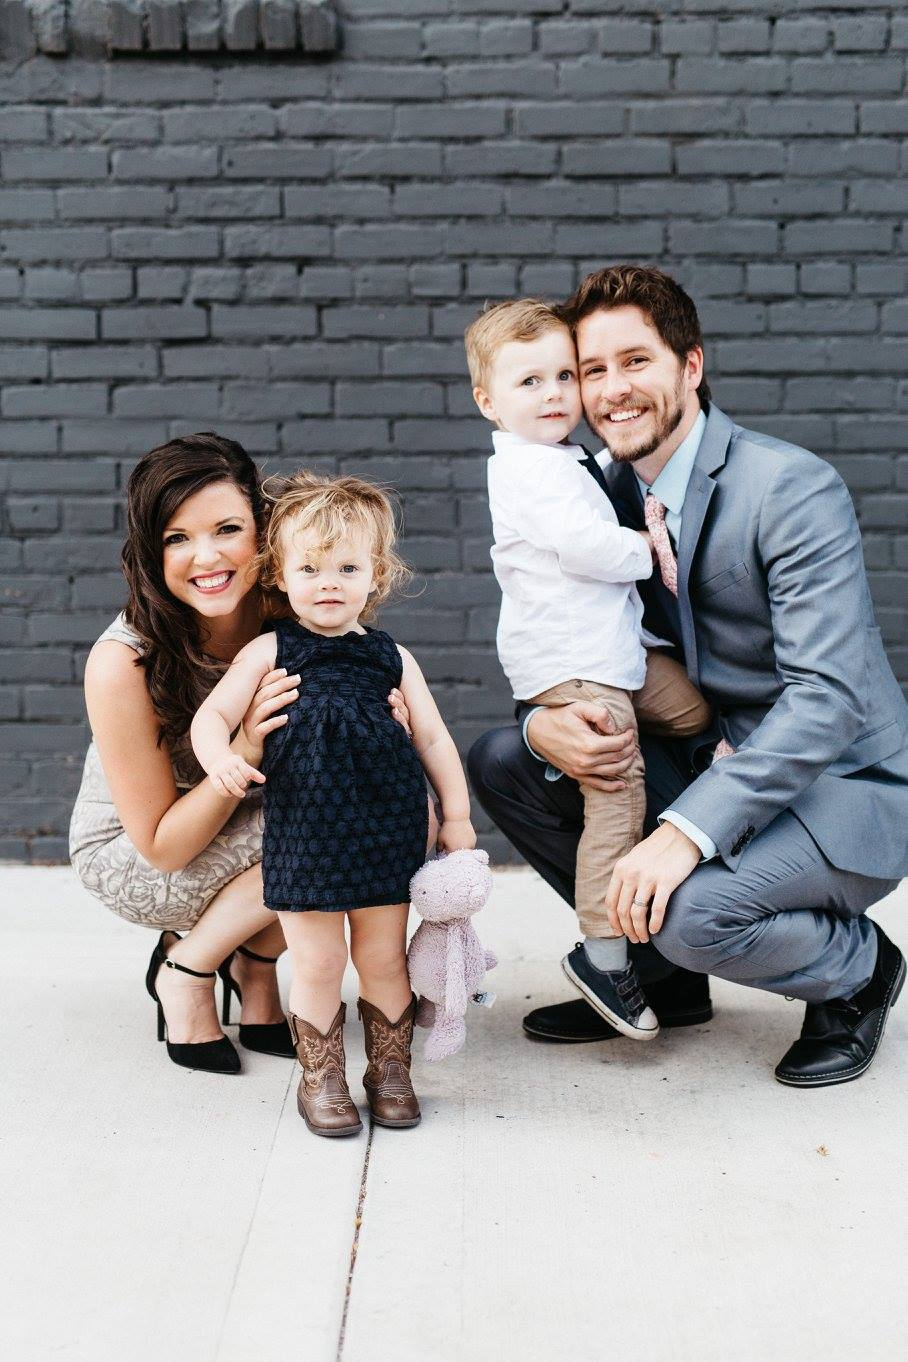 our family | a place for stay at home moms who want to make an income while raising their family full time